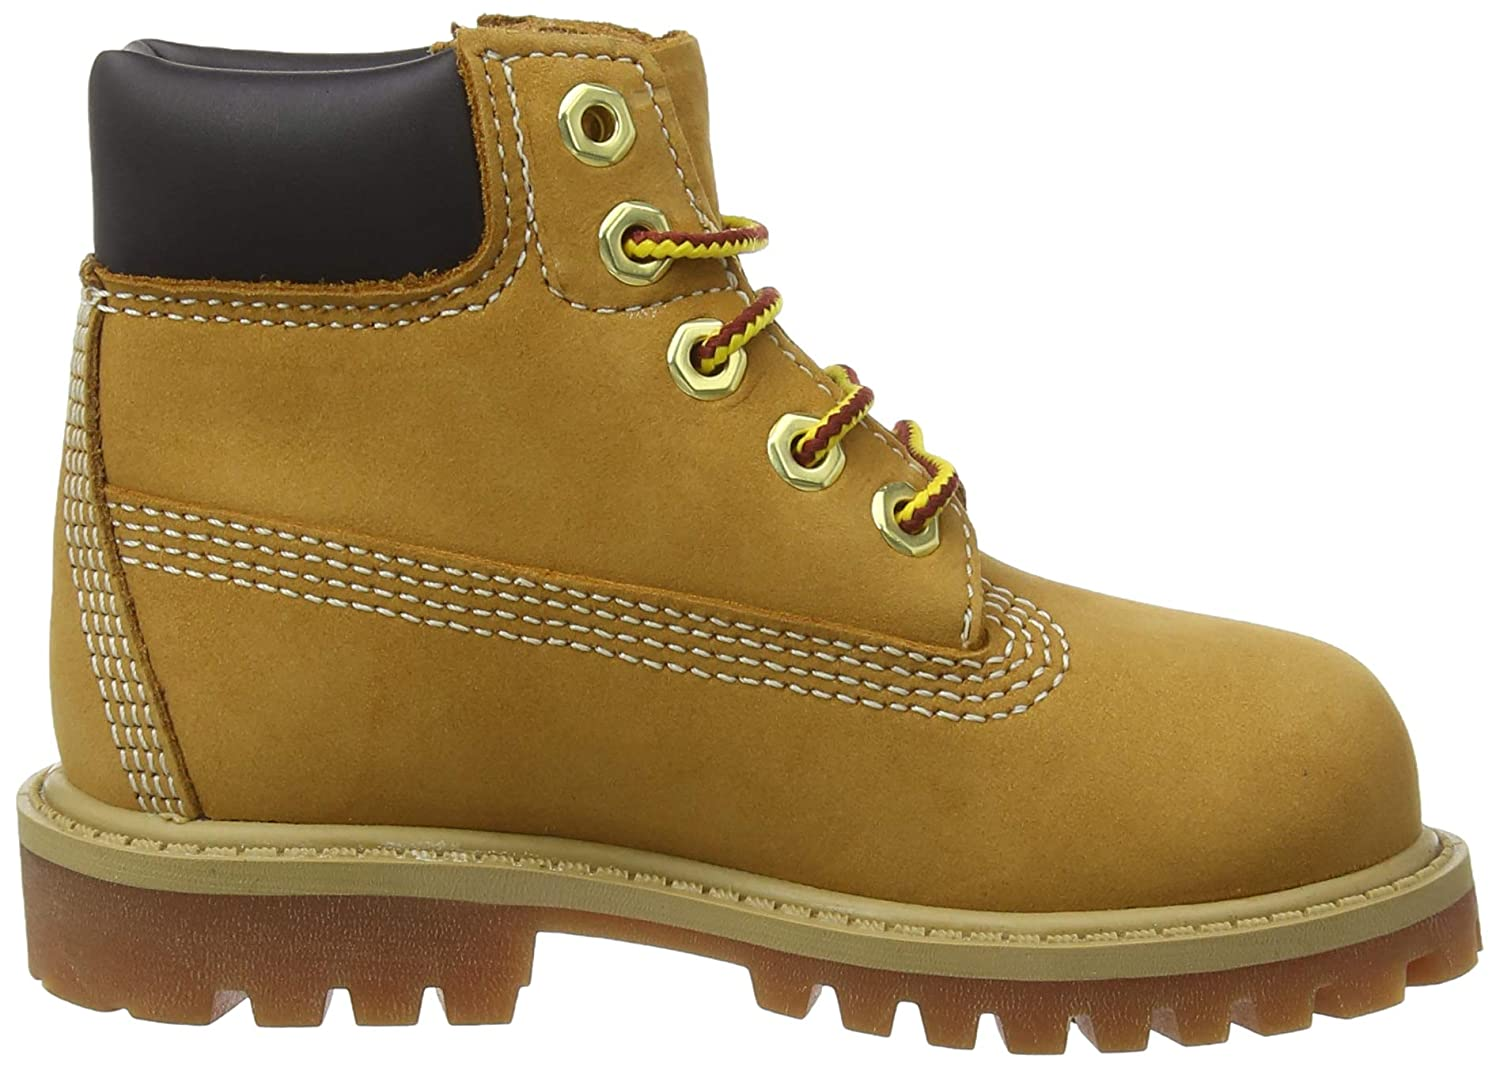 Amazon.com | Timberland Baby 6 in Classic Boot, Wheat, 7 Wide US Toddler | Boots